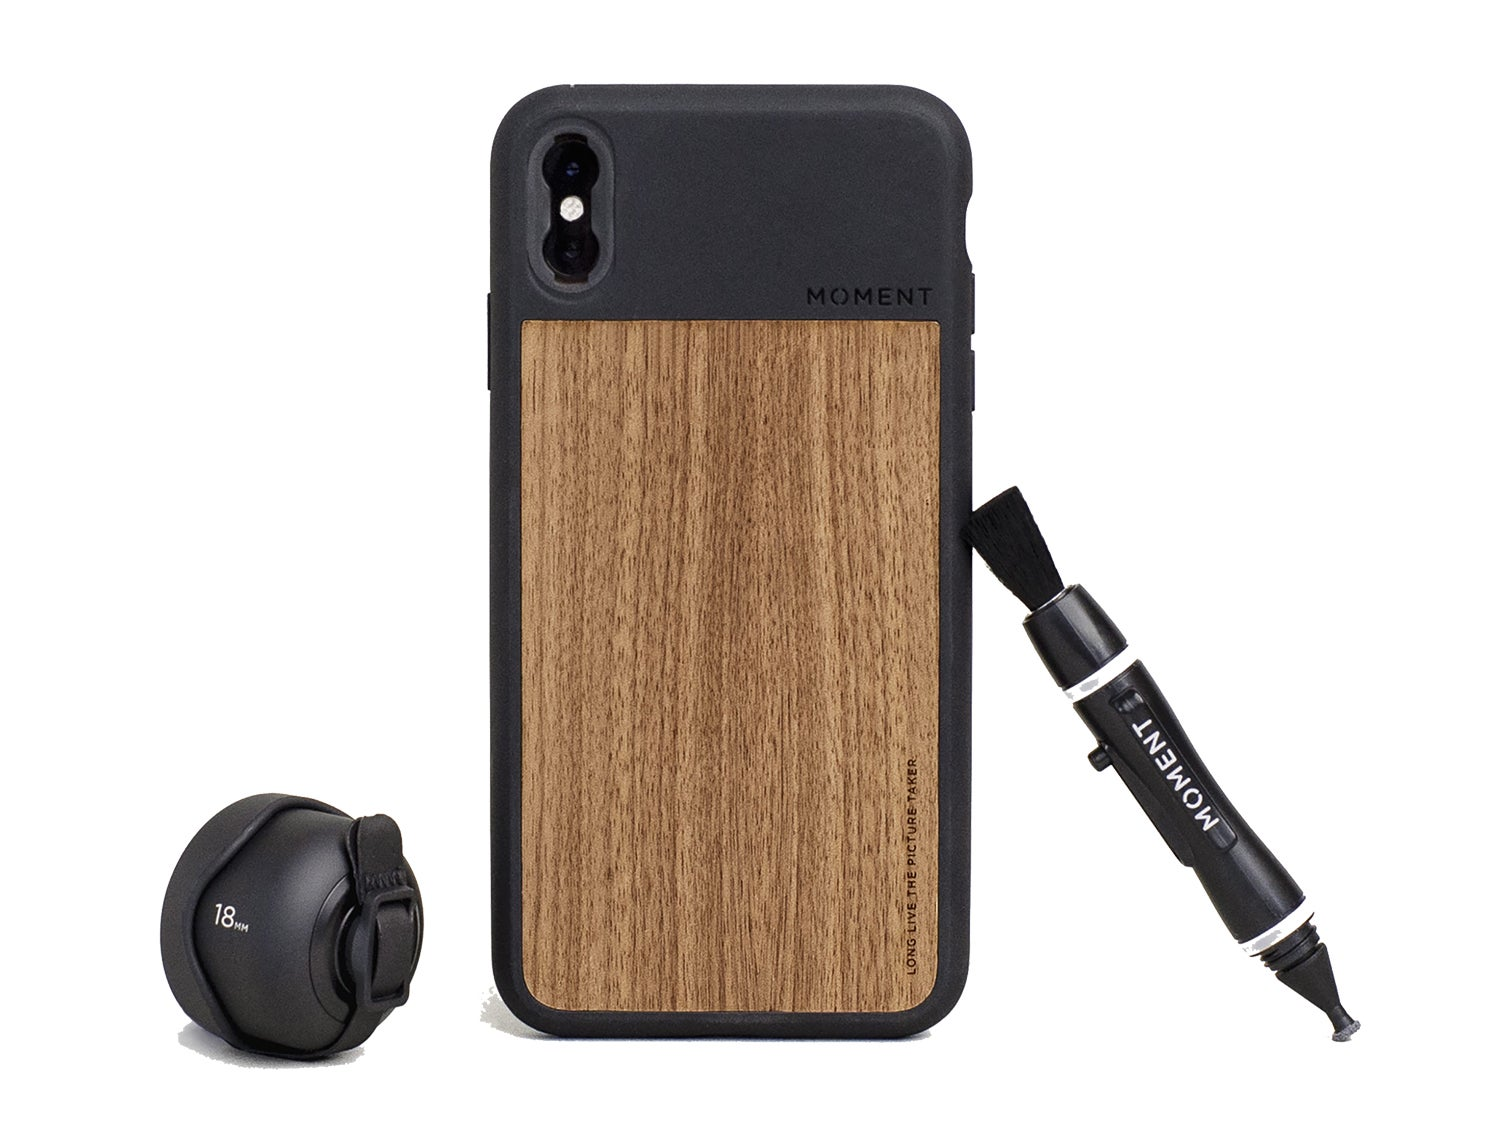 Moment Smartphone Lenses and Case